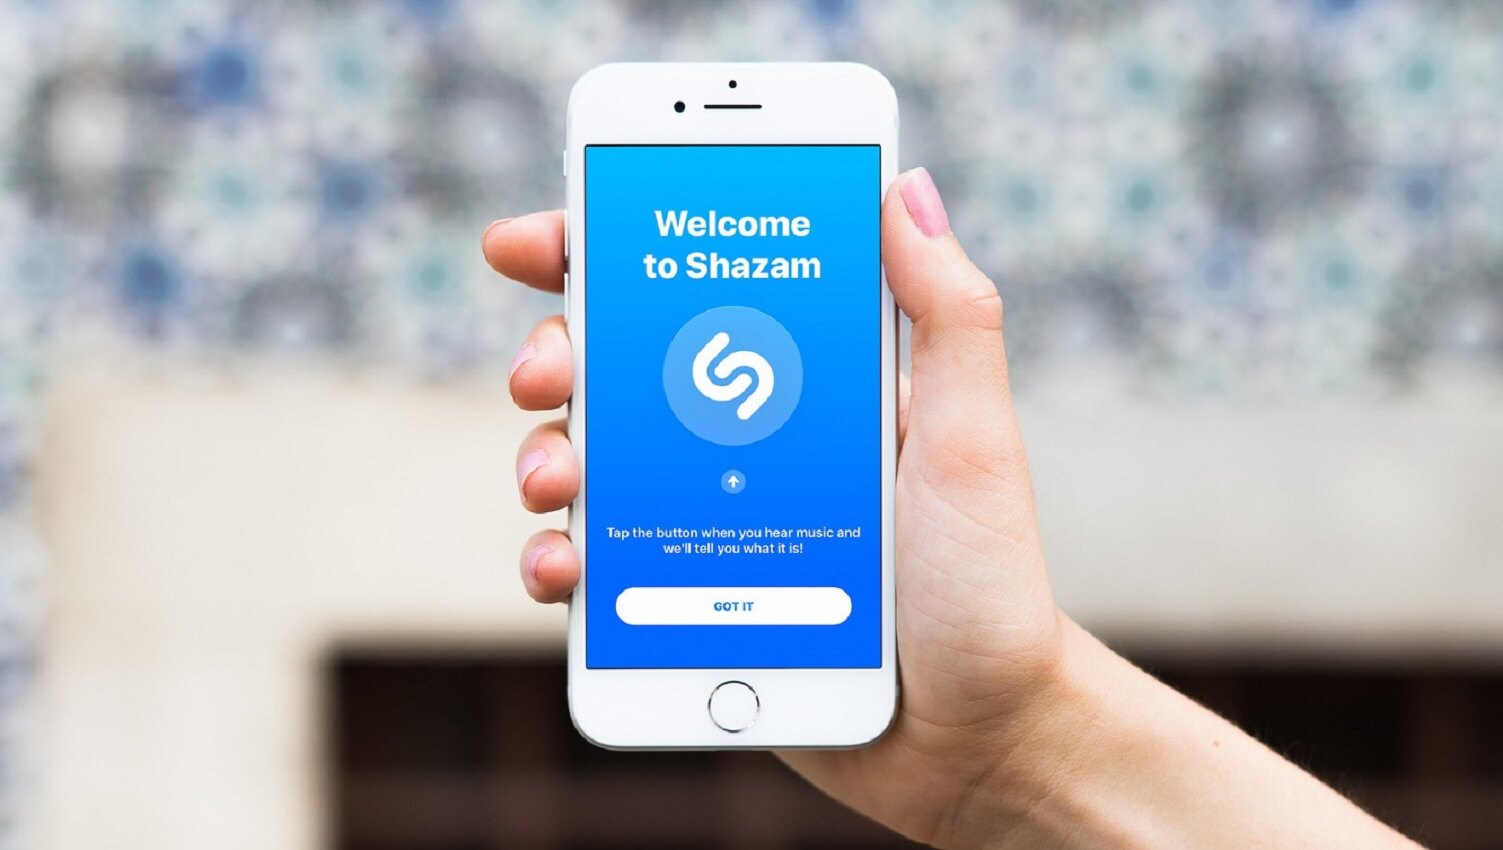 You can now use Shazam to share your music on Instagram Stories